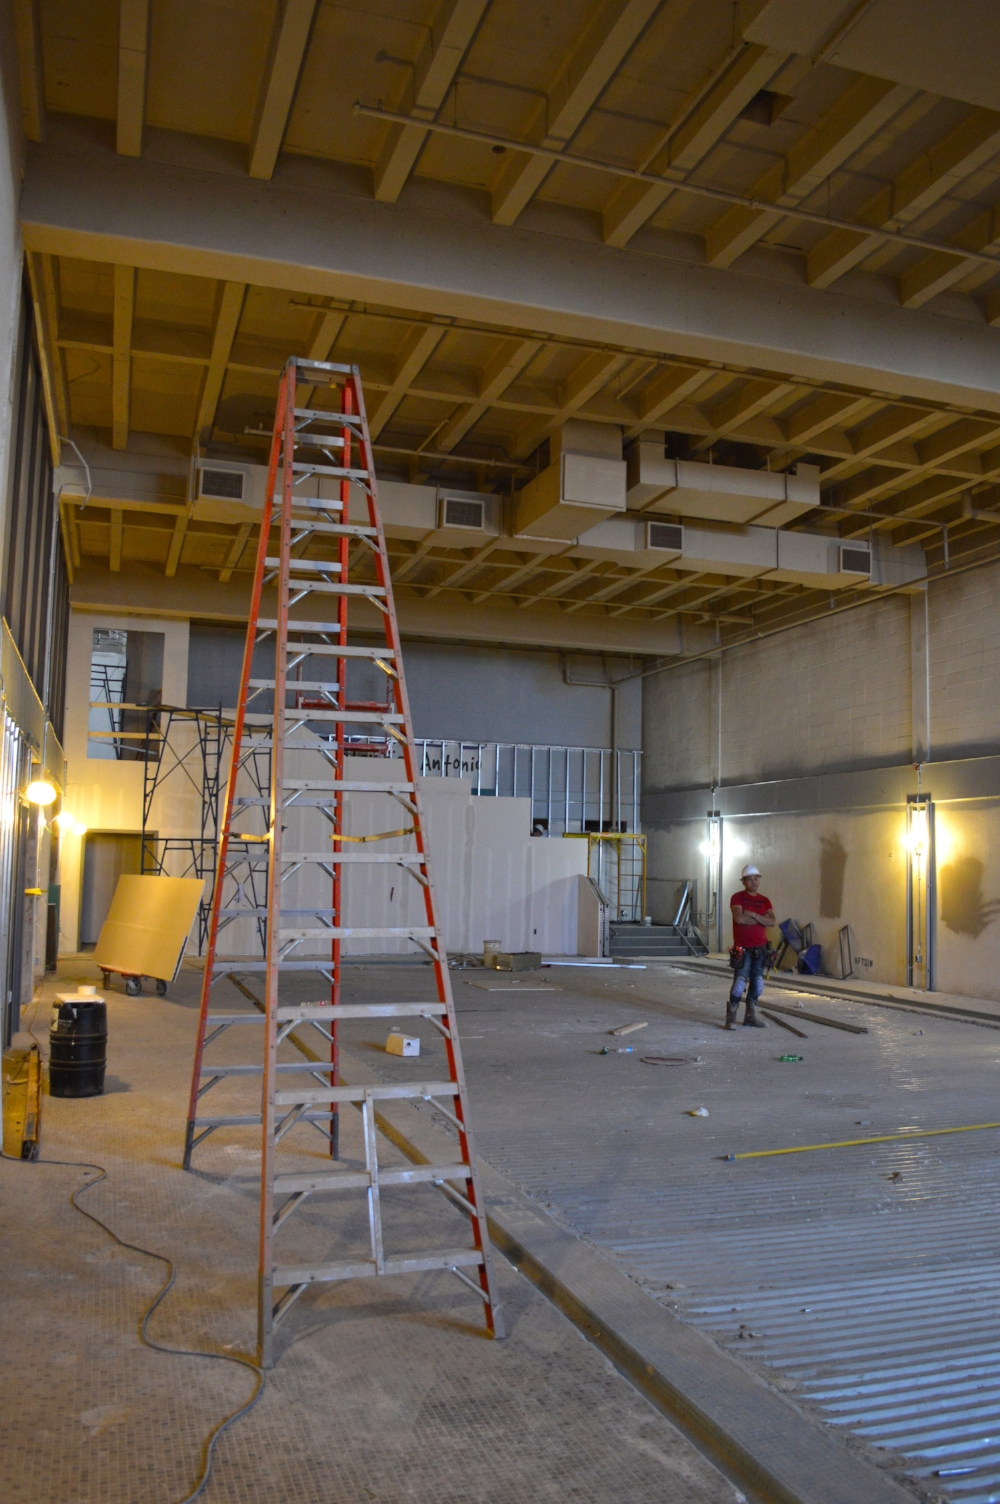 The old swimming pool has been covered over with metal decking in anticipation of the new floor which will make this room the Fellowship Hall. Old ceiling tiles were removed to expose the cast-in-place concrete roof structure.